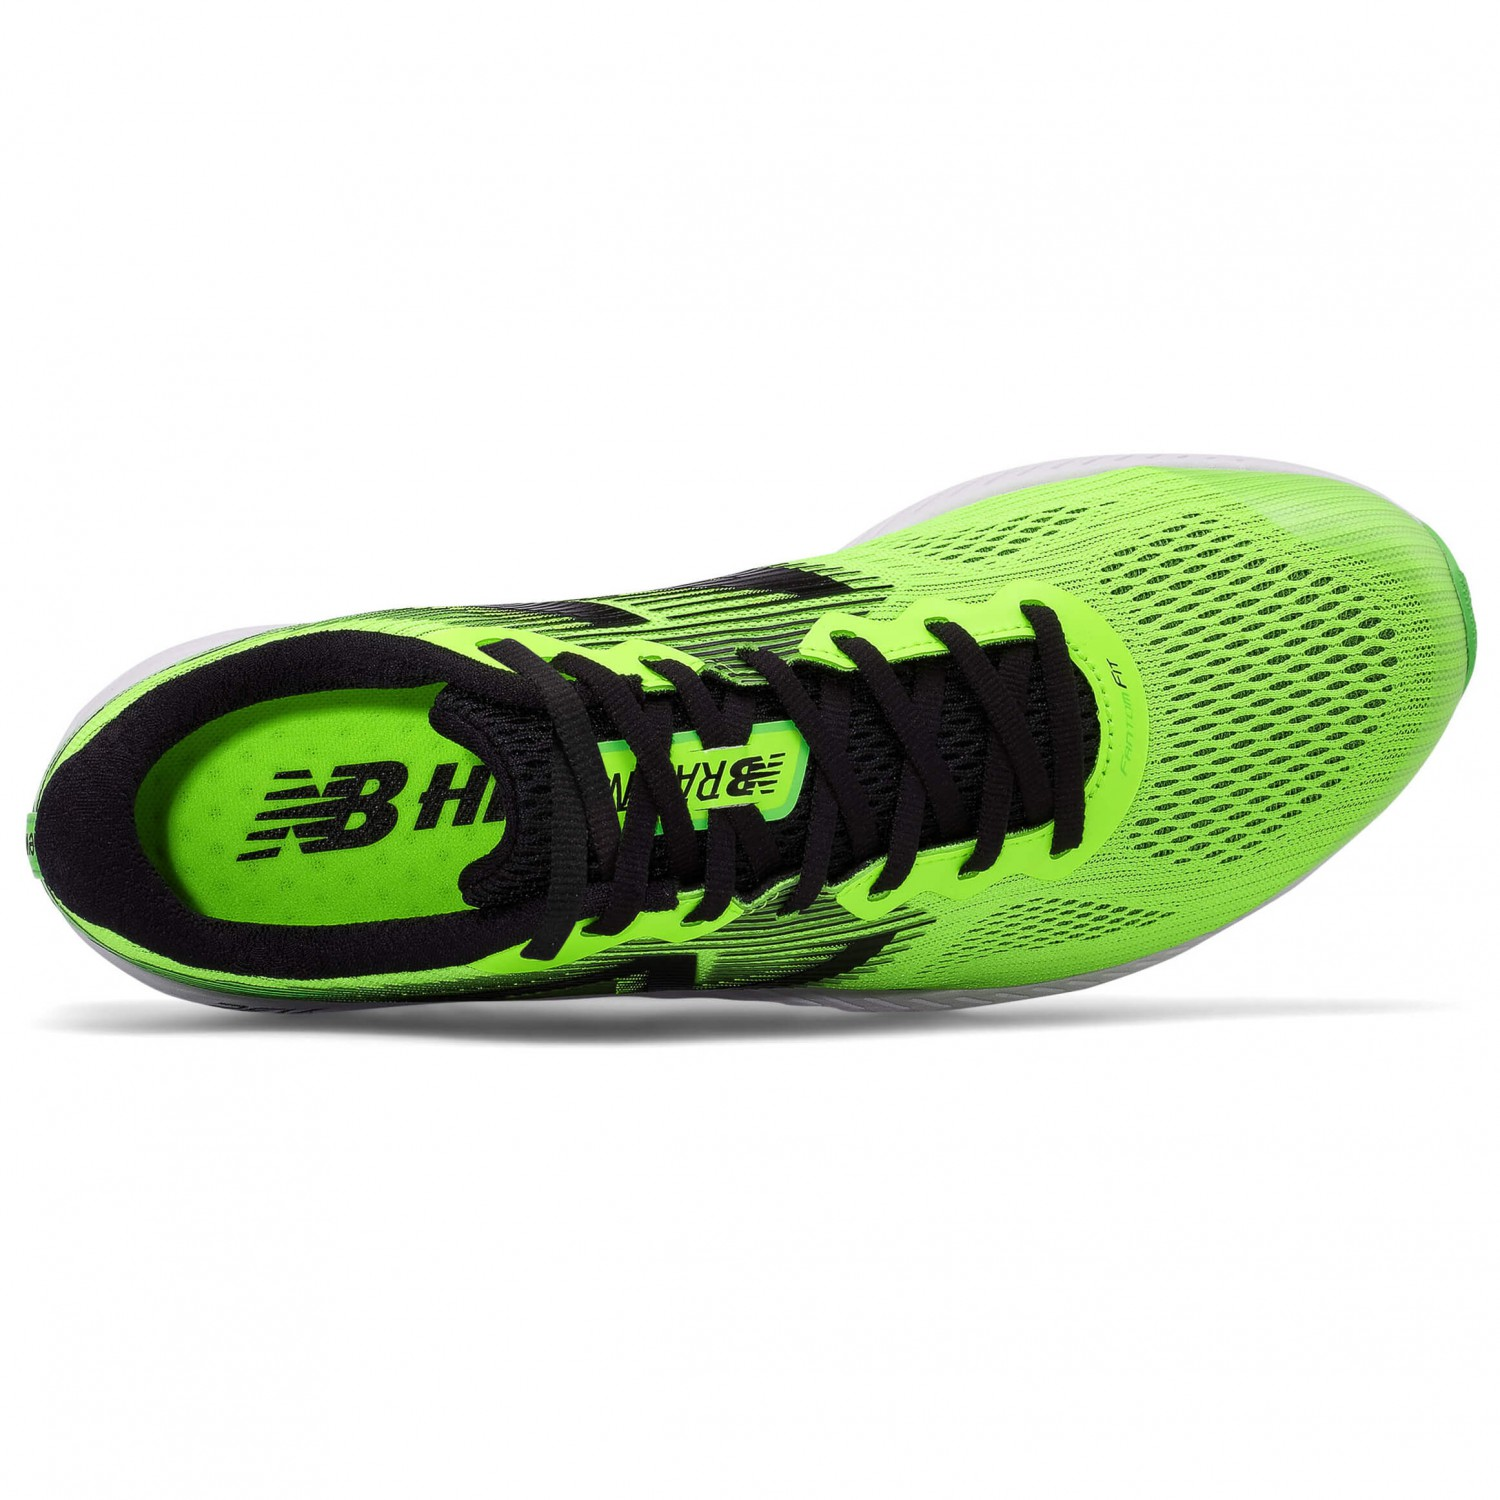 new balance nbx 1400 v5 mens shoes green